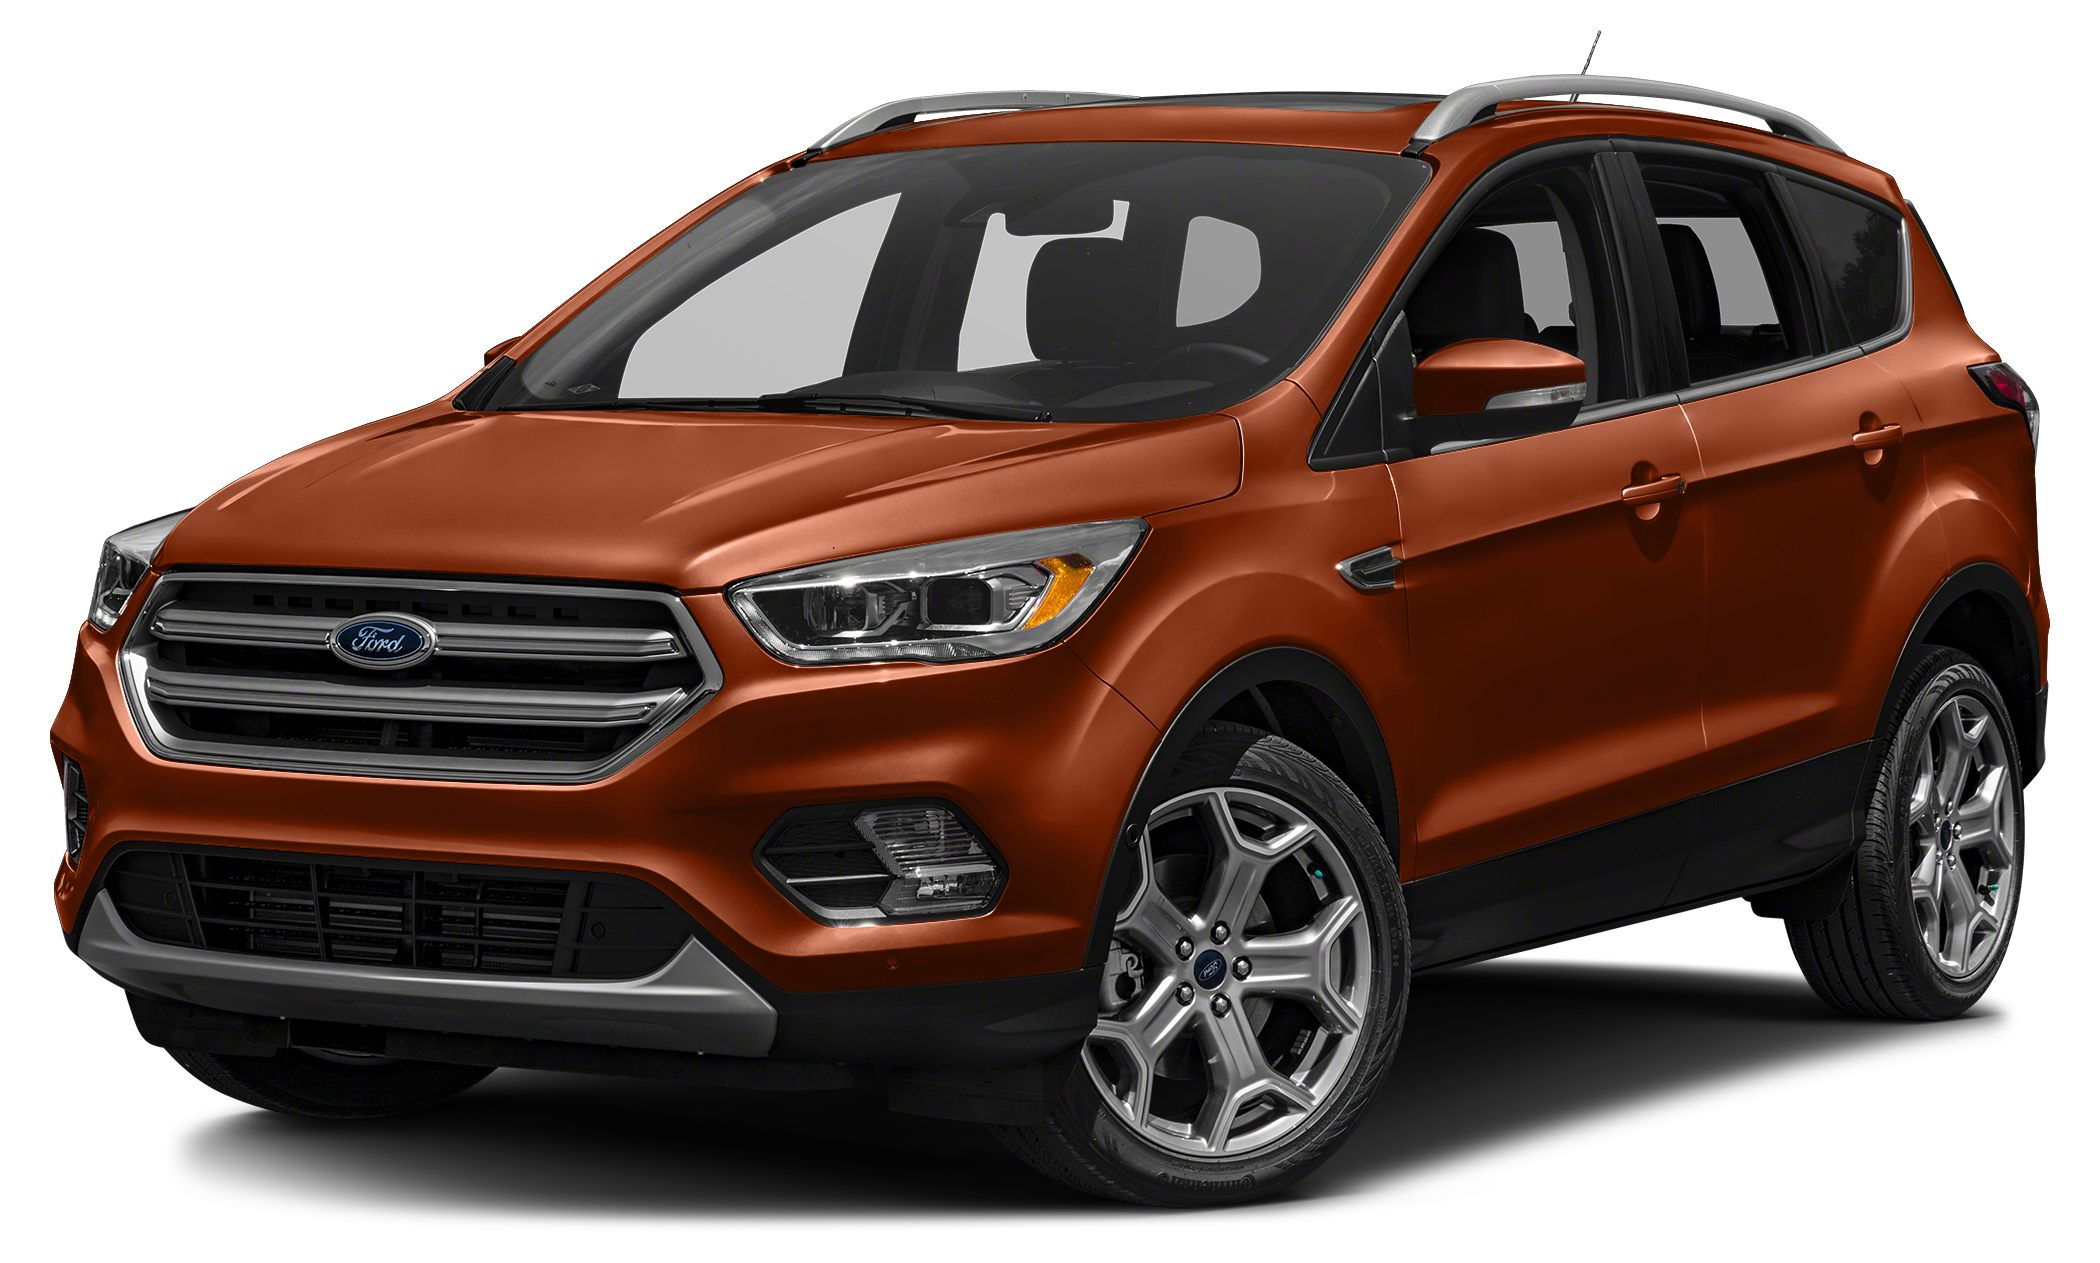 2017 Ford Escape Titanium The Our Cost Price reflects all applicable manufacturer rebates andor i